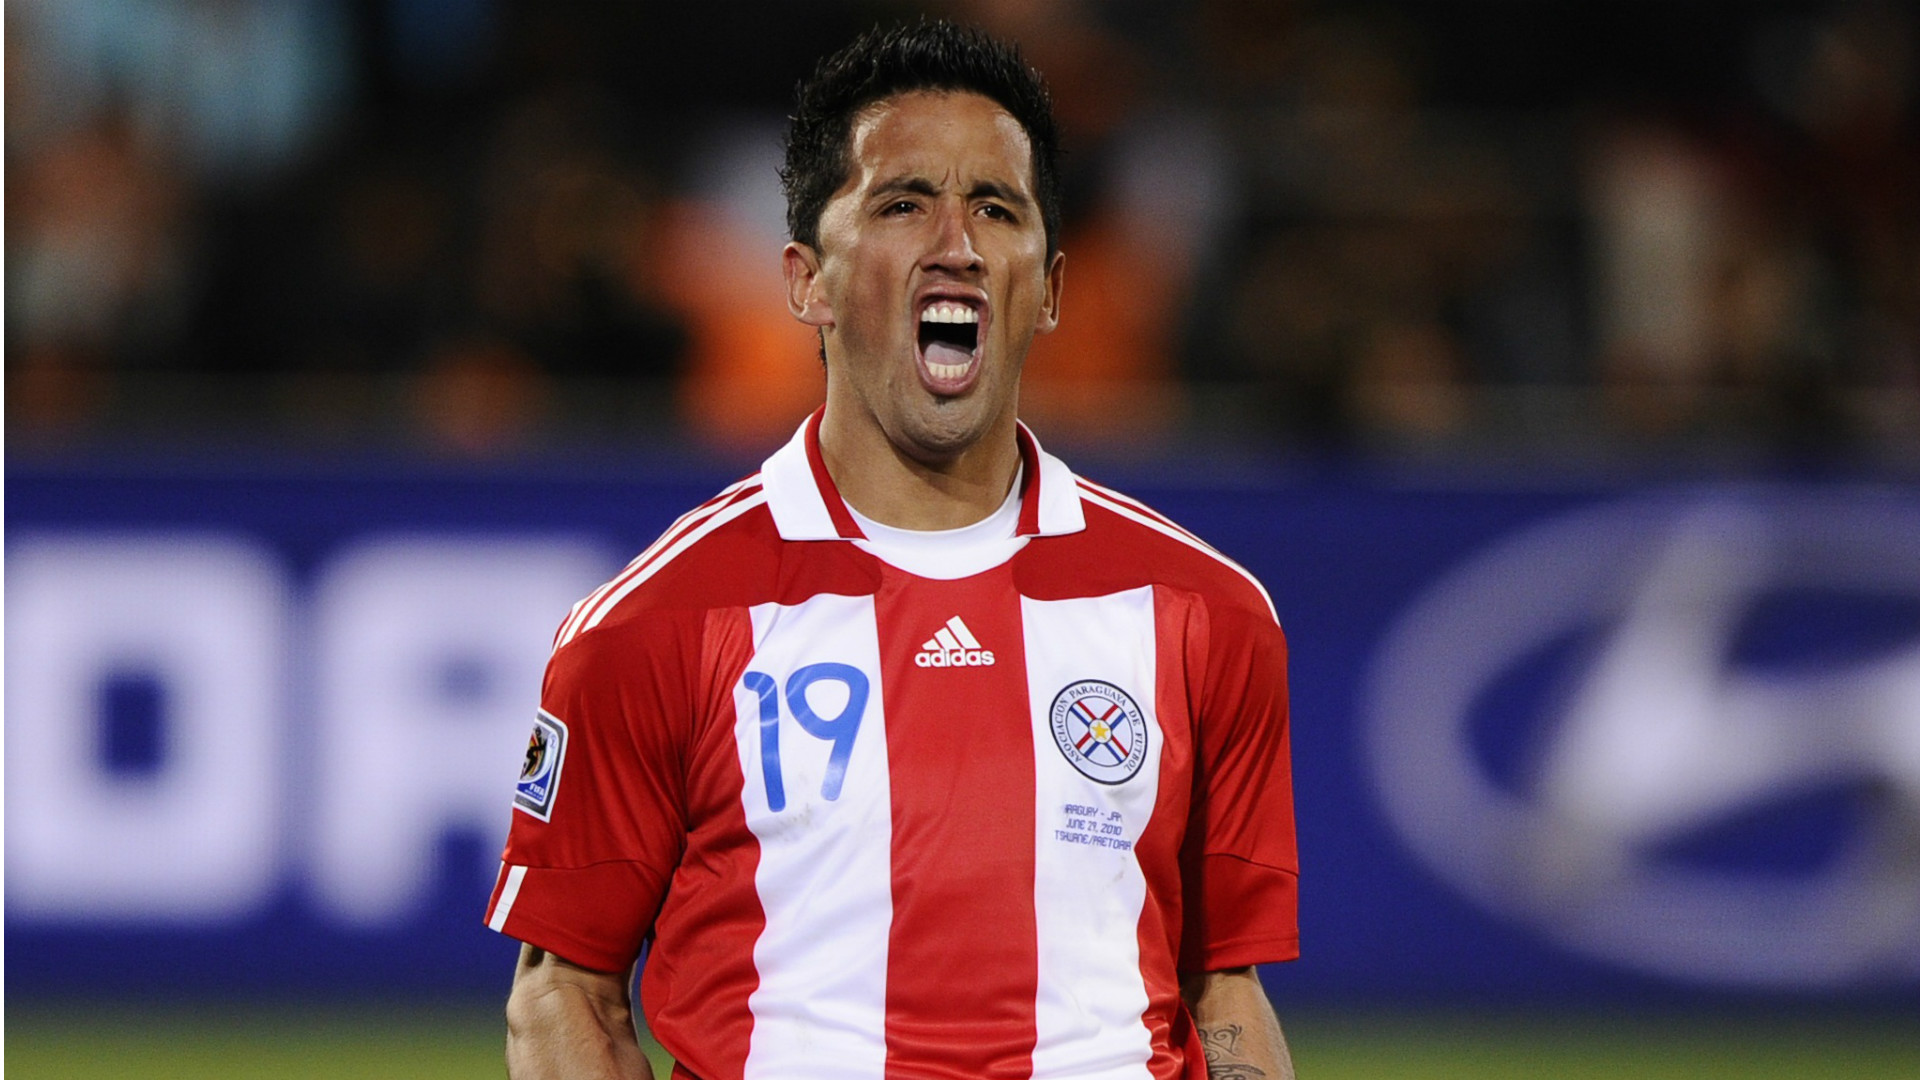 lucas-barrios-paraguay-japan-fifa-world-cup-southafrica-29062010_ggs2xf6f36f018vzama0vfr79